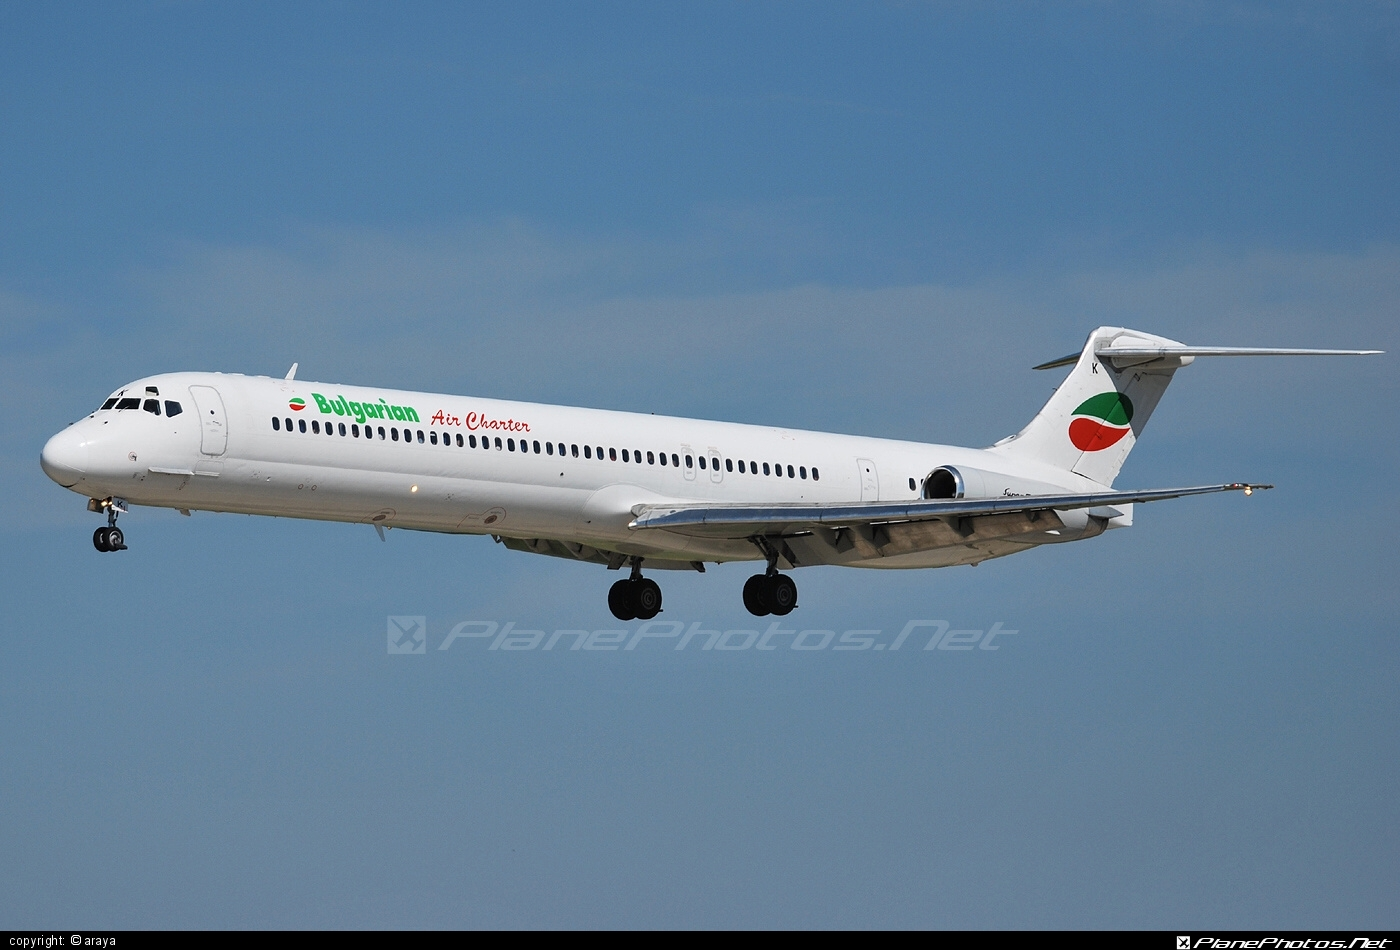 McDonnell Douglas MD-82 - LZ-LDK operated by Bulgarian Air Charter #bulgarianaircharter #mcdonnelldouglas #mcdonnelldouglas80 #mcdonnelldouglas82 #mcdonnelldouglasmd80 #mcdonnelldouglasmd82 #md80 #md82